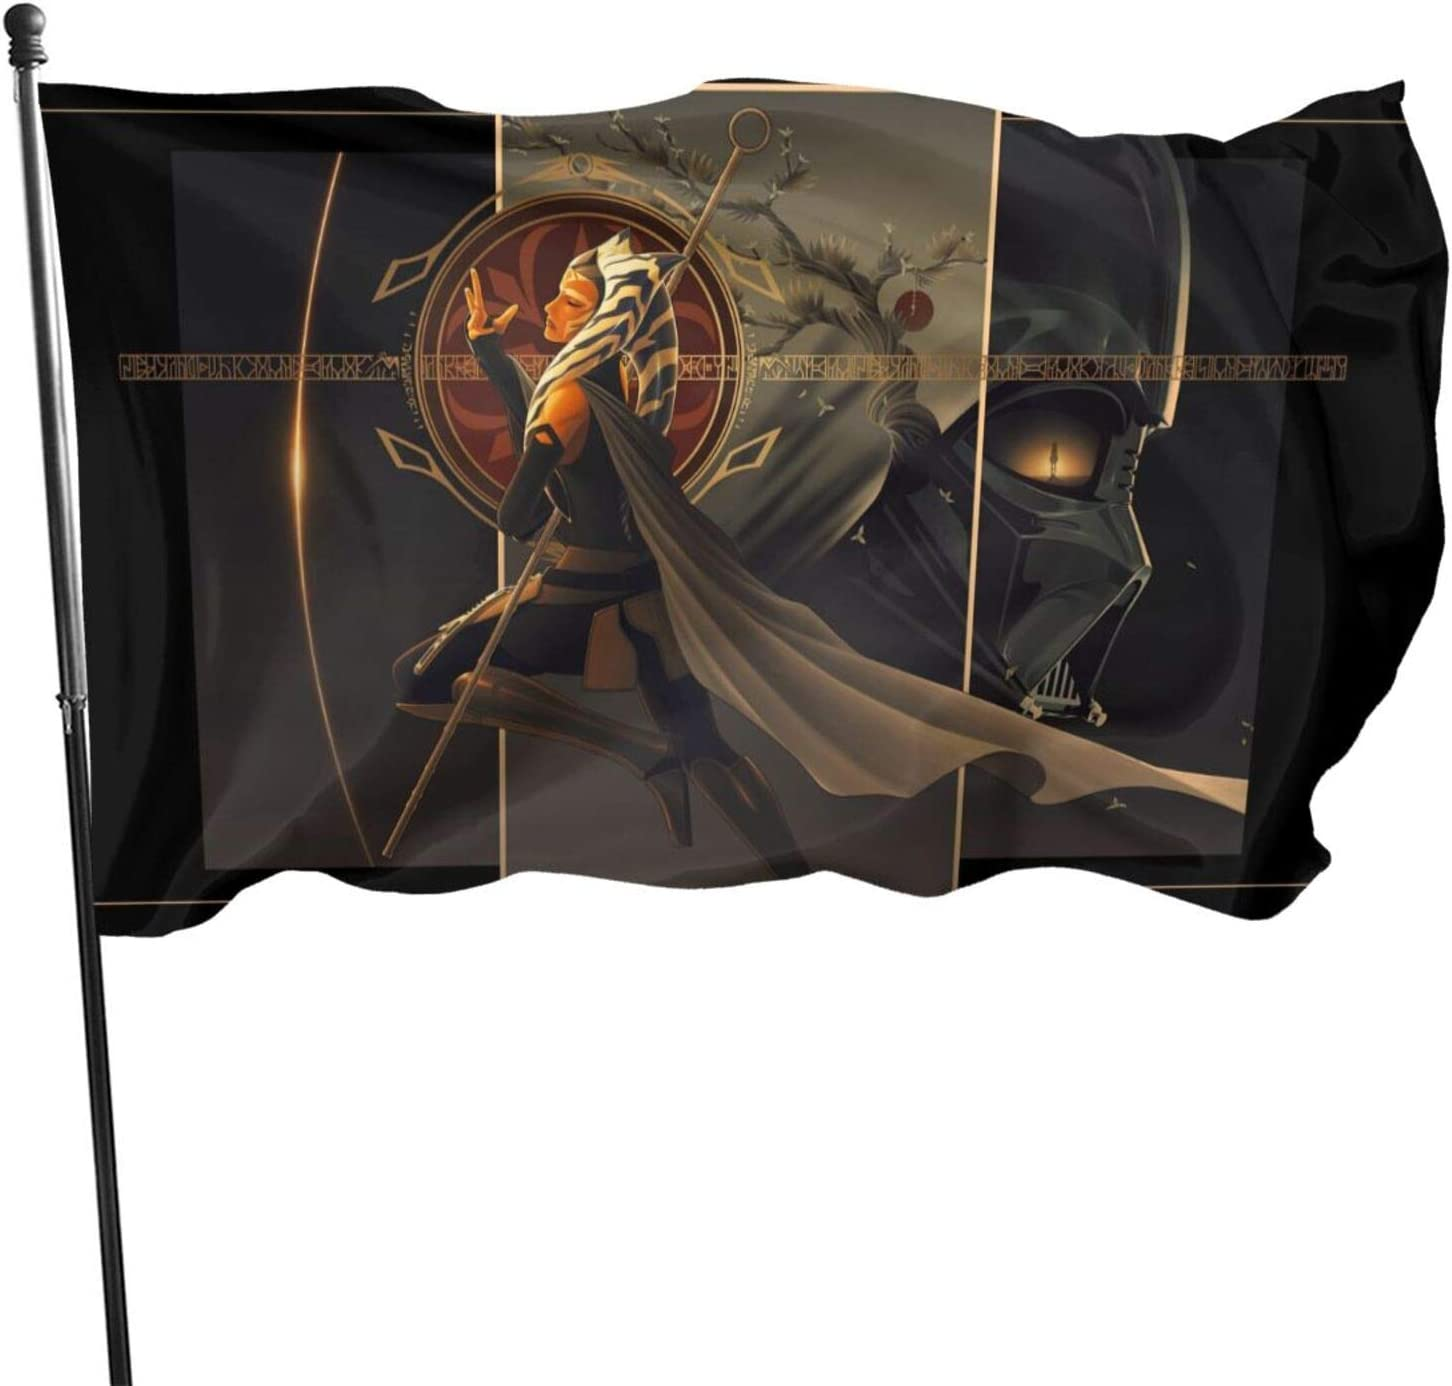 LHLYDFGG A-hsoka T-ano Darth Vader Flag Decorative Outdoors Hanging Flags Home Garden and Holiday Yard Flag 3 x 5 Ft